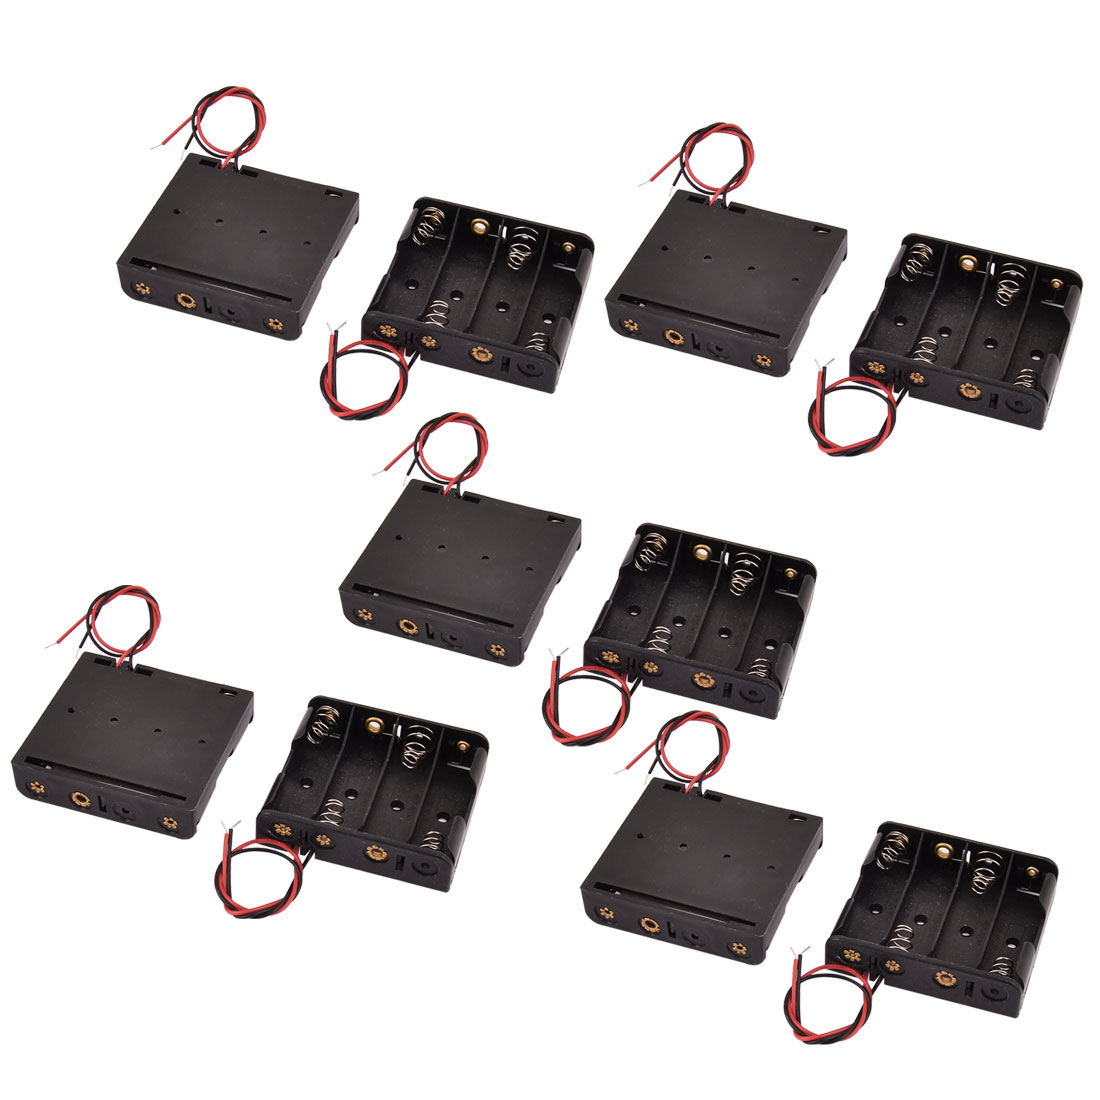 10 Pcs 4 x 1.5V AA Black Battery Batteries Holder Case with Wire Leads